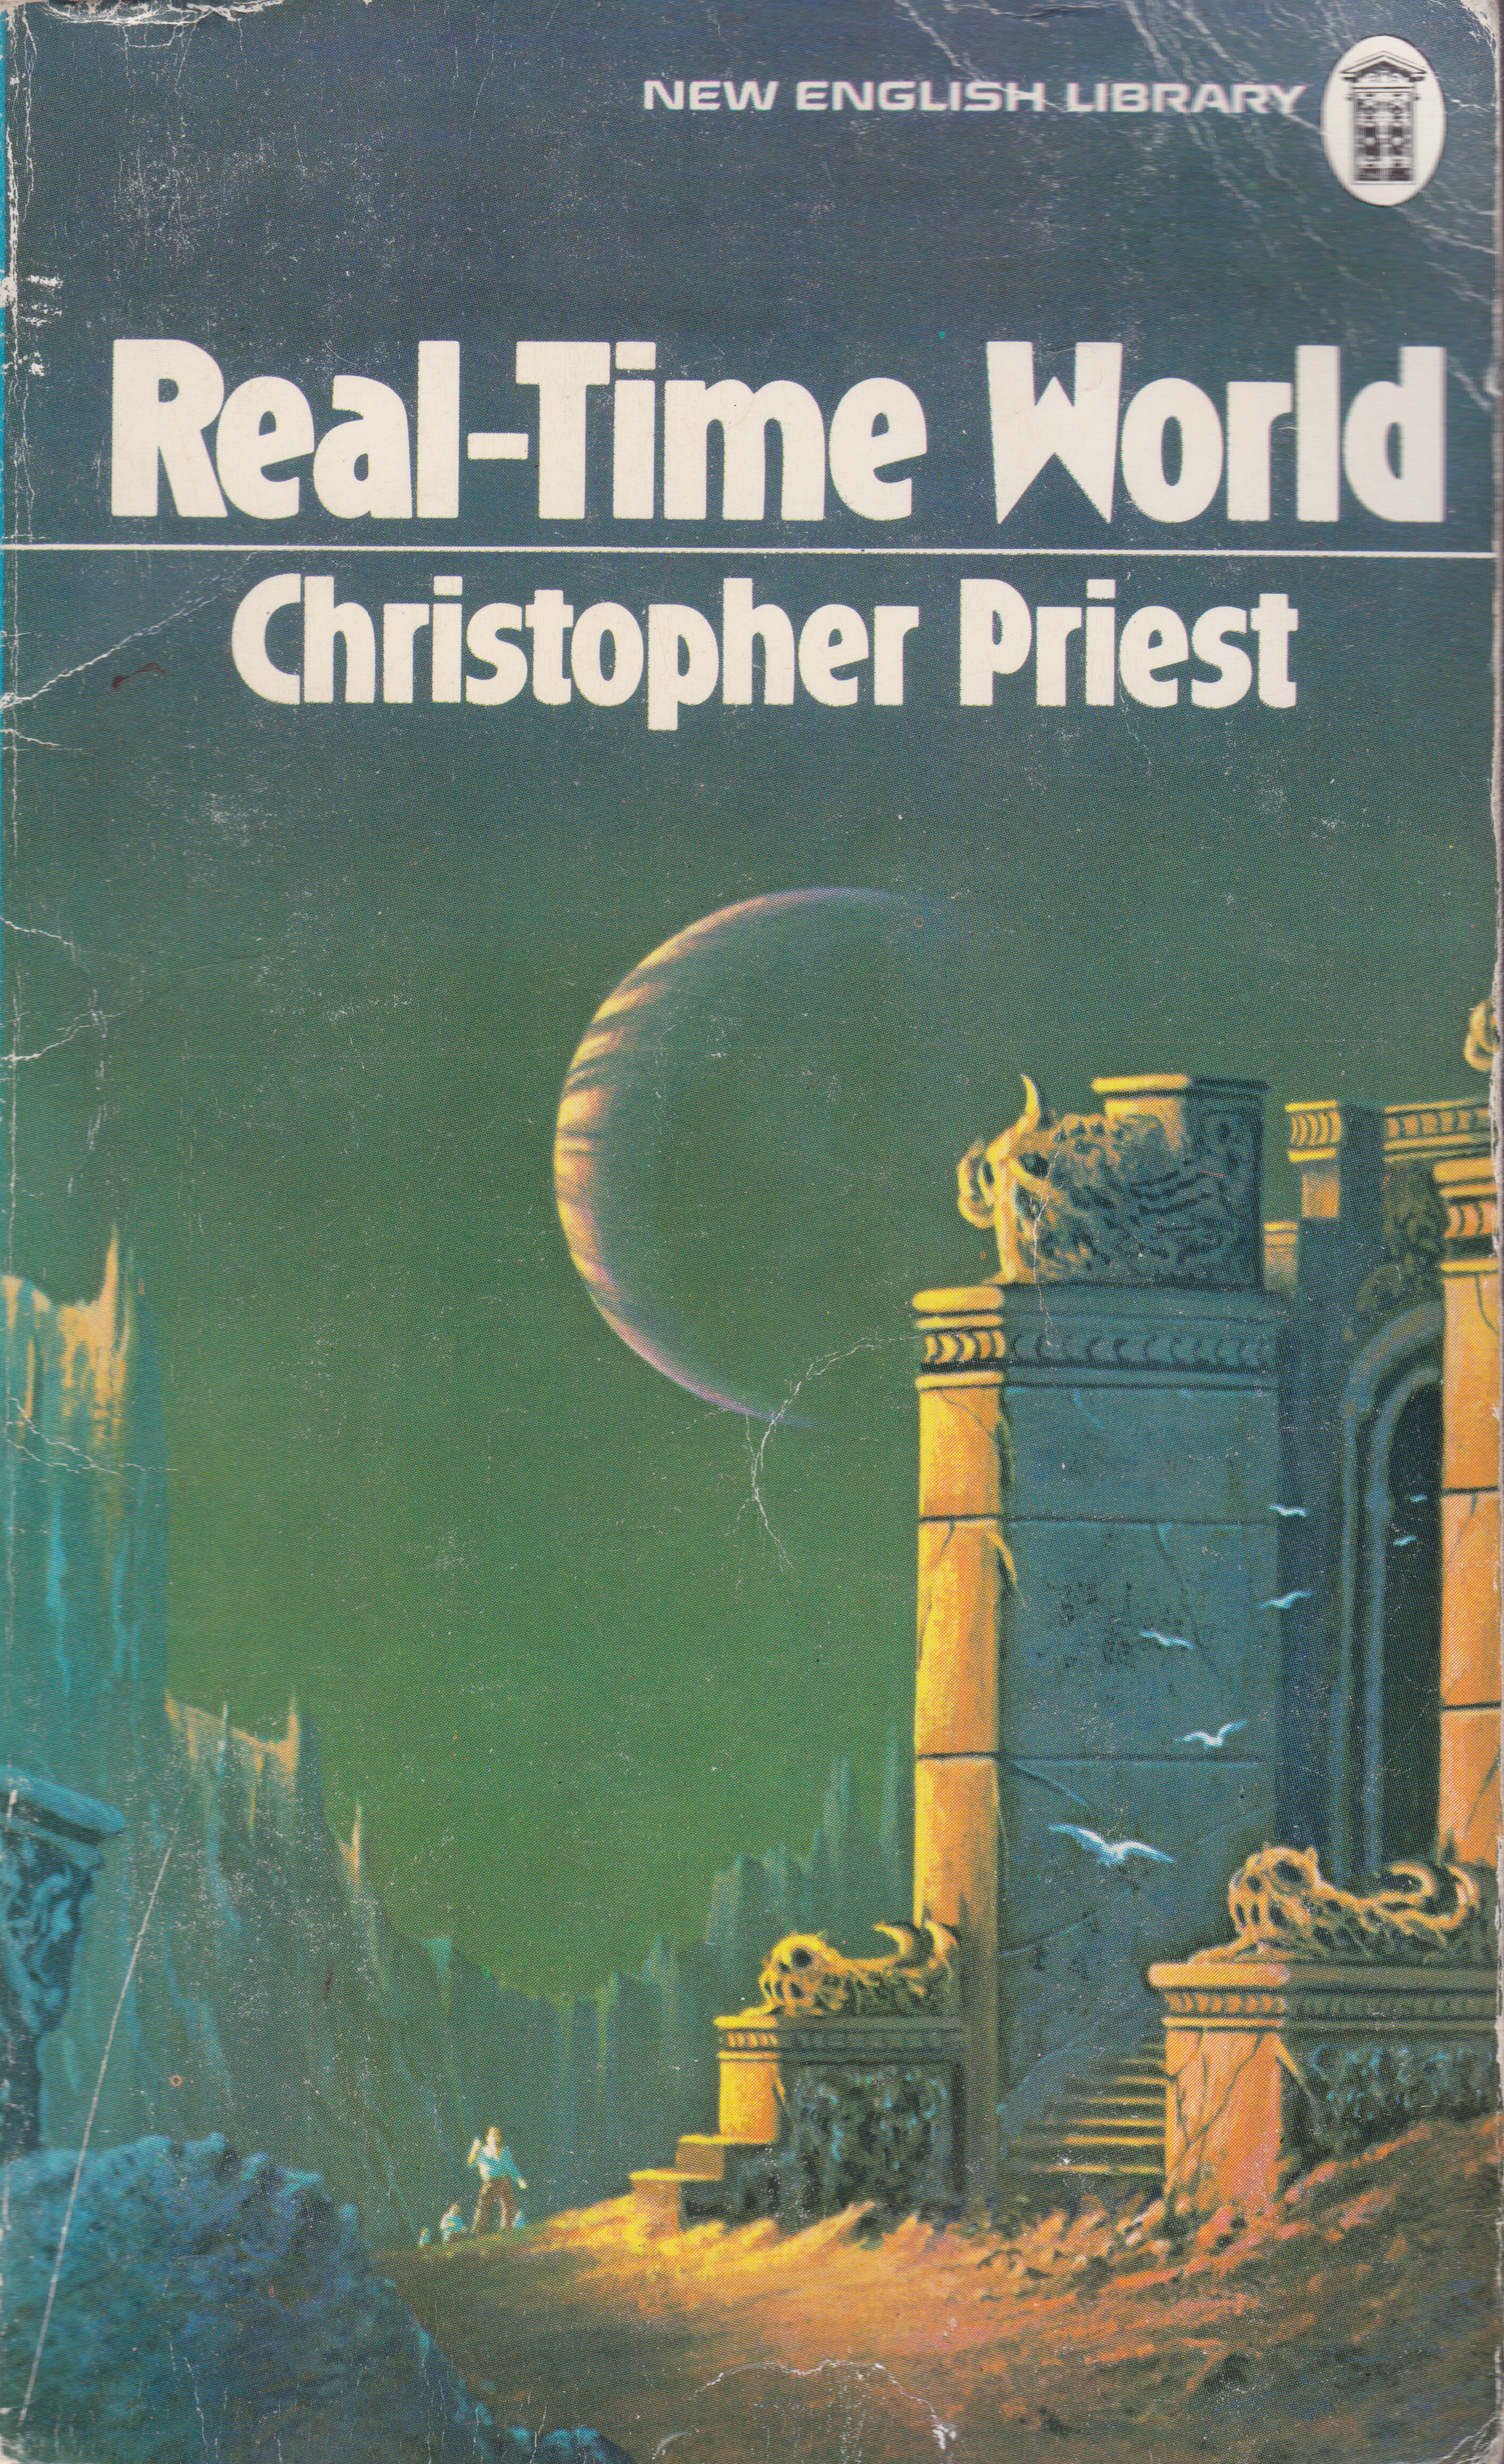 Book Review: Real-Time World, Christopher Priest (1974)